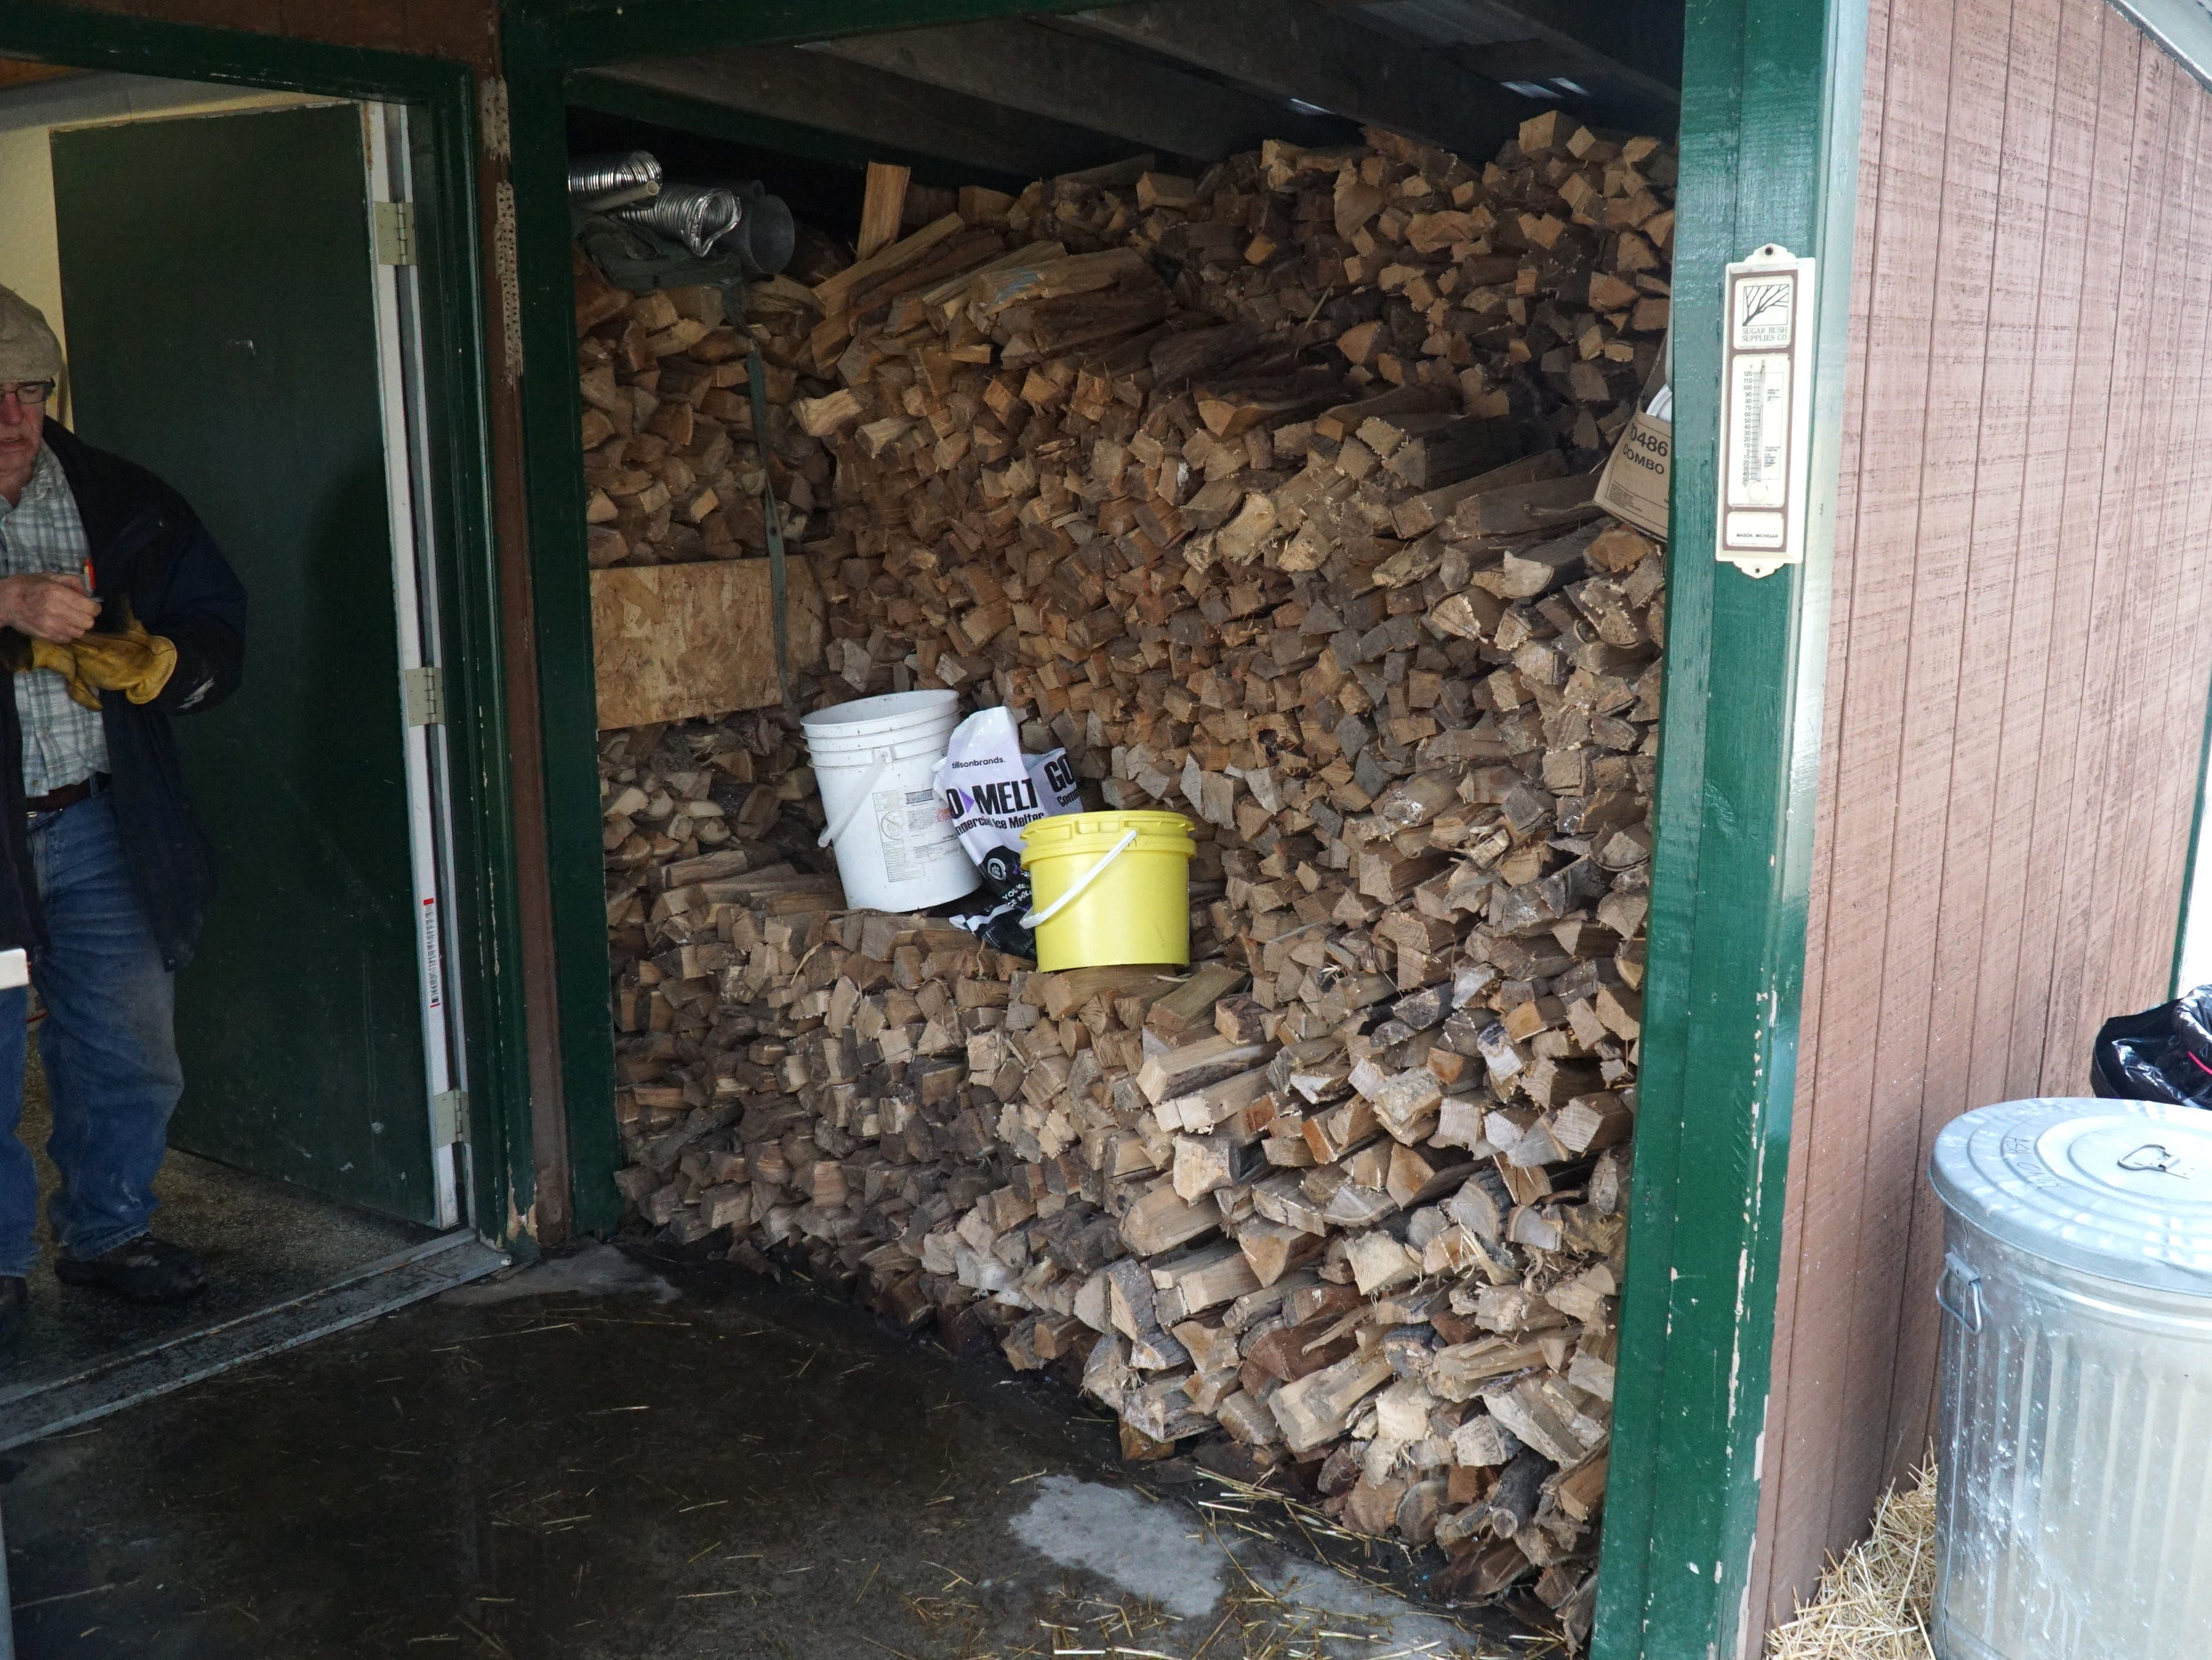 Tollgate uses lots of maple logs to fire up its evaporator - which it maintains its supply from its own forest.